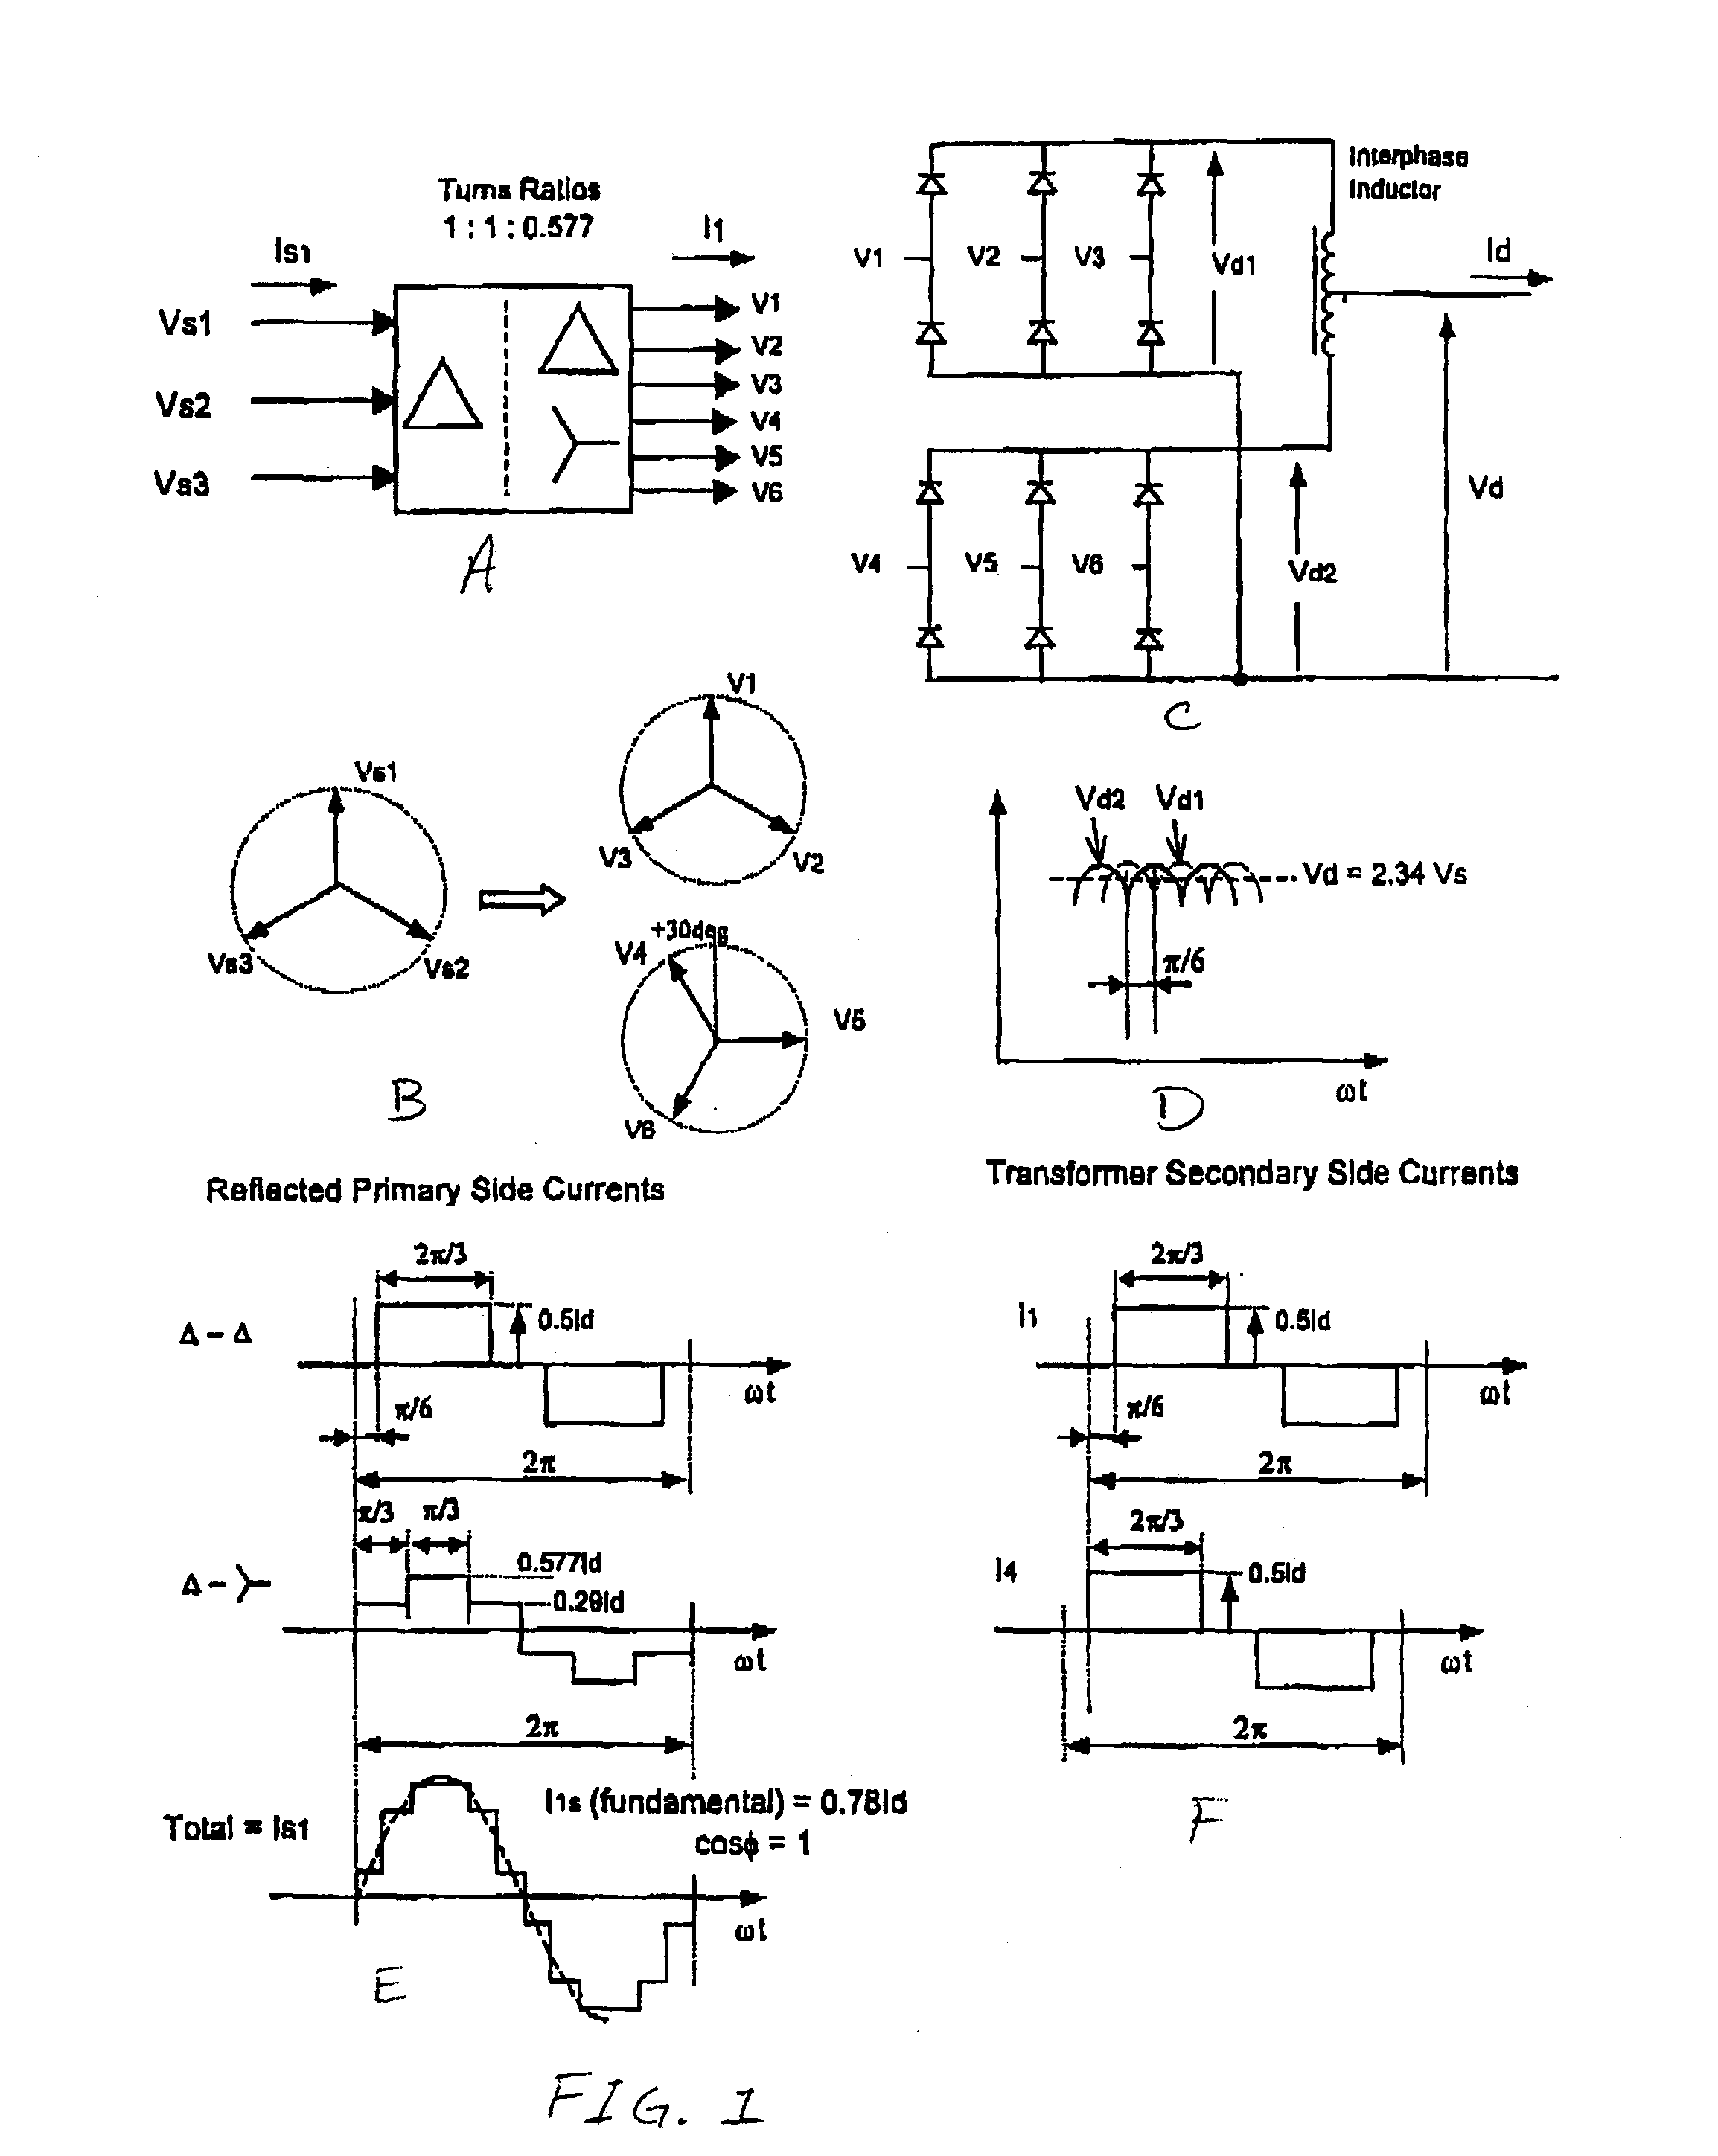 Proscenium Arch Stage Diagram likewise Wiring Diagram For Motor Starter 3 Phase Forward Reverse Ac Control At Three And besides Star Delta Starter Wiring Diagram Pdf besides Star Delta Motor Wiring Diagram moreover 3phasemotors1. on motor star delta connection